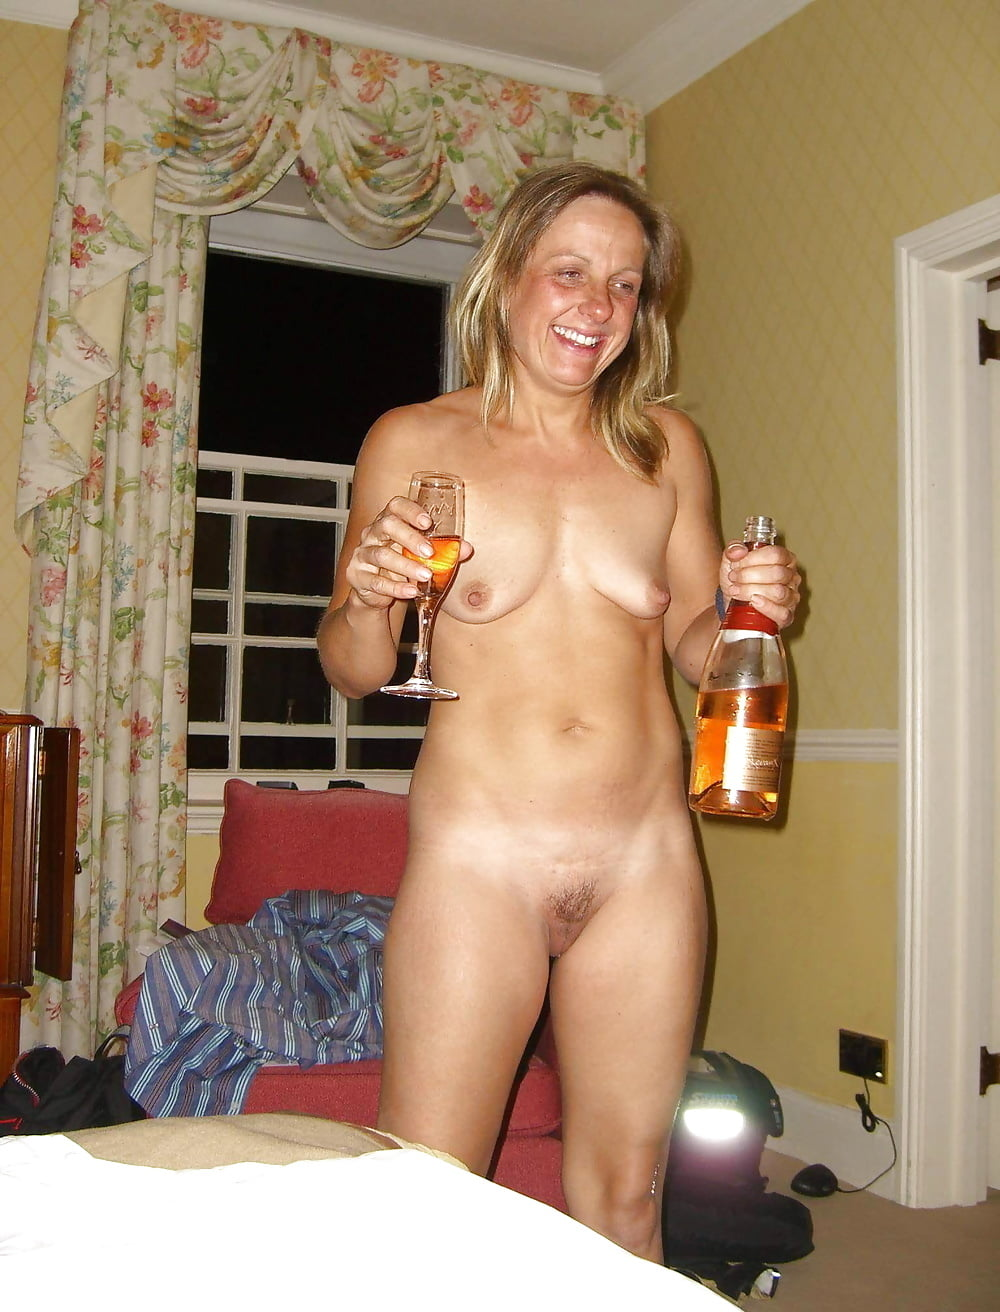 drunk-wives-naked-photos